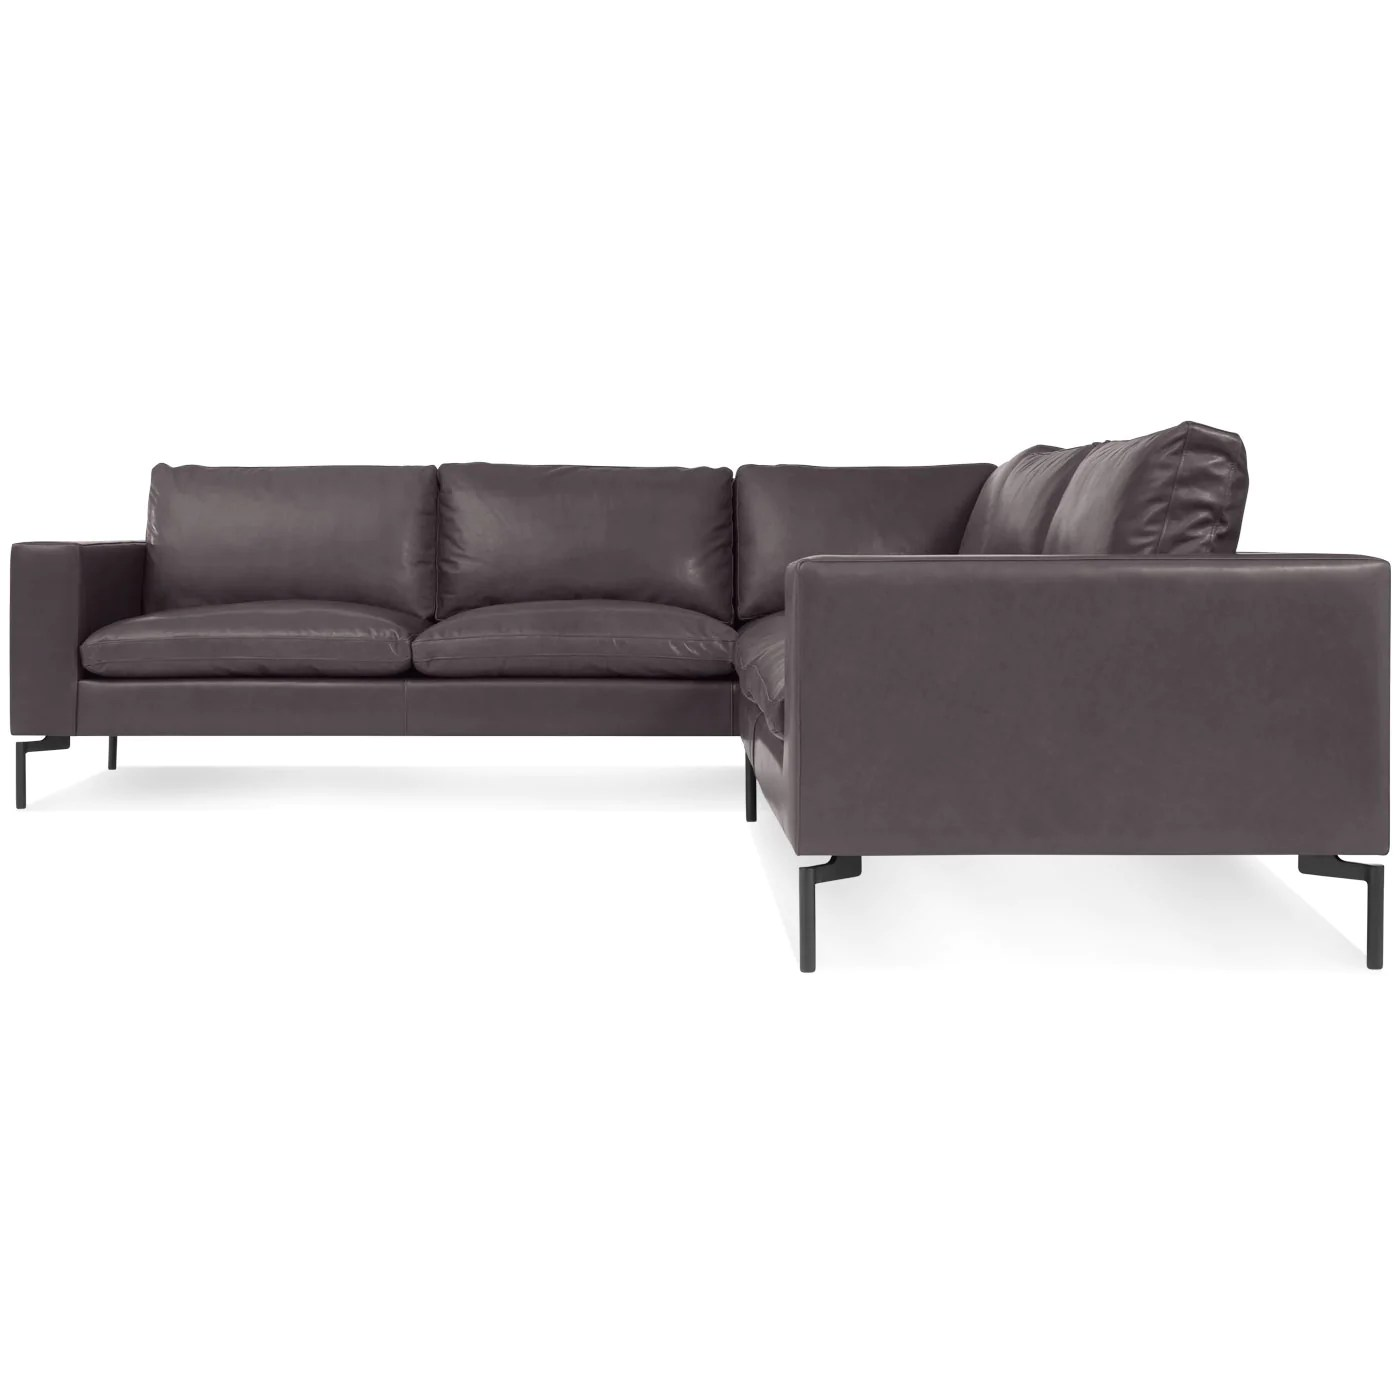 Blu Dot New Standard Right Leather Sectional Sofa Small